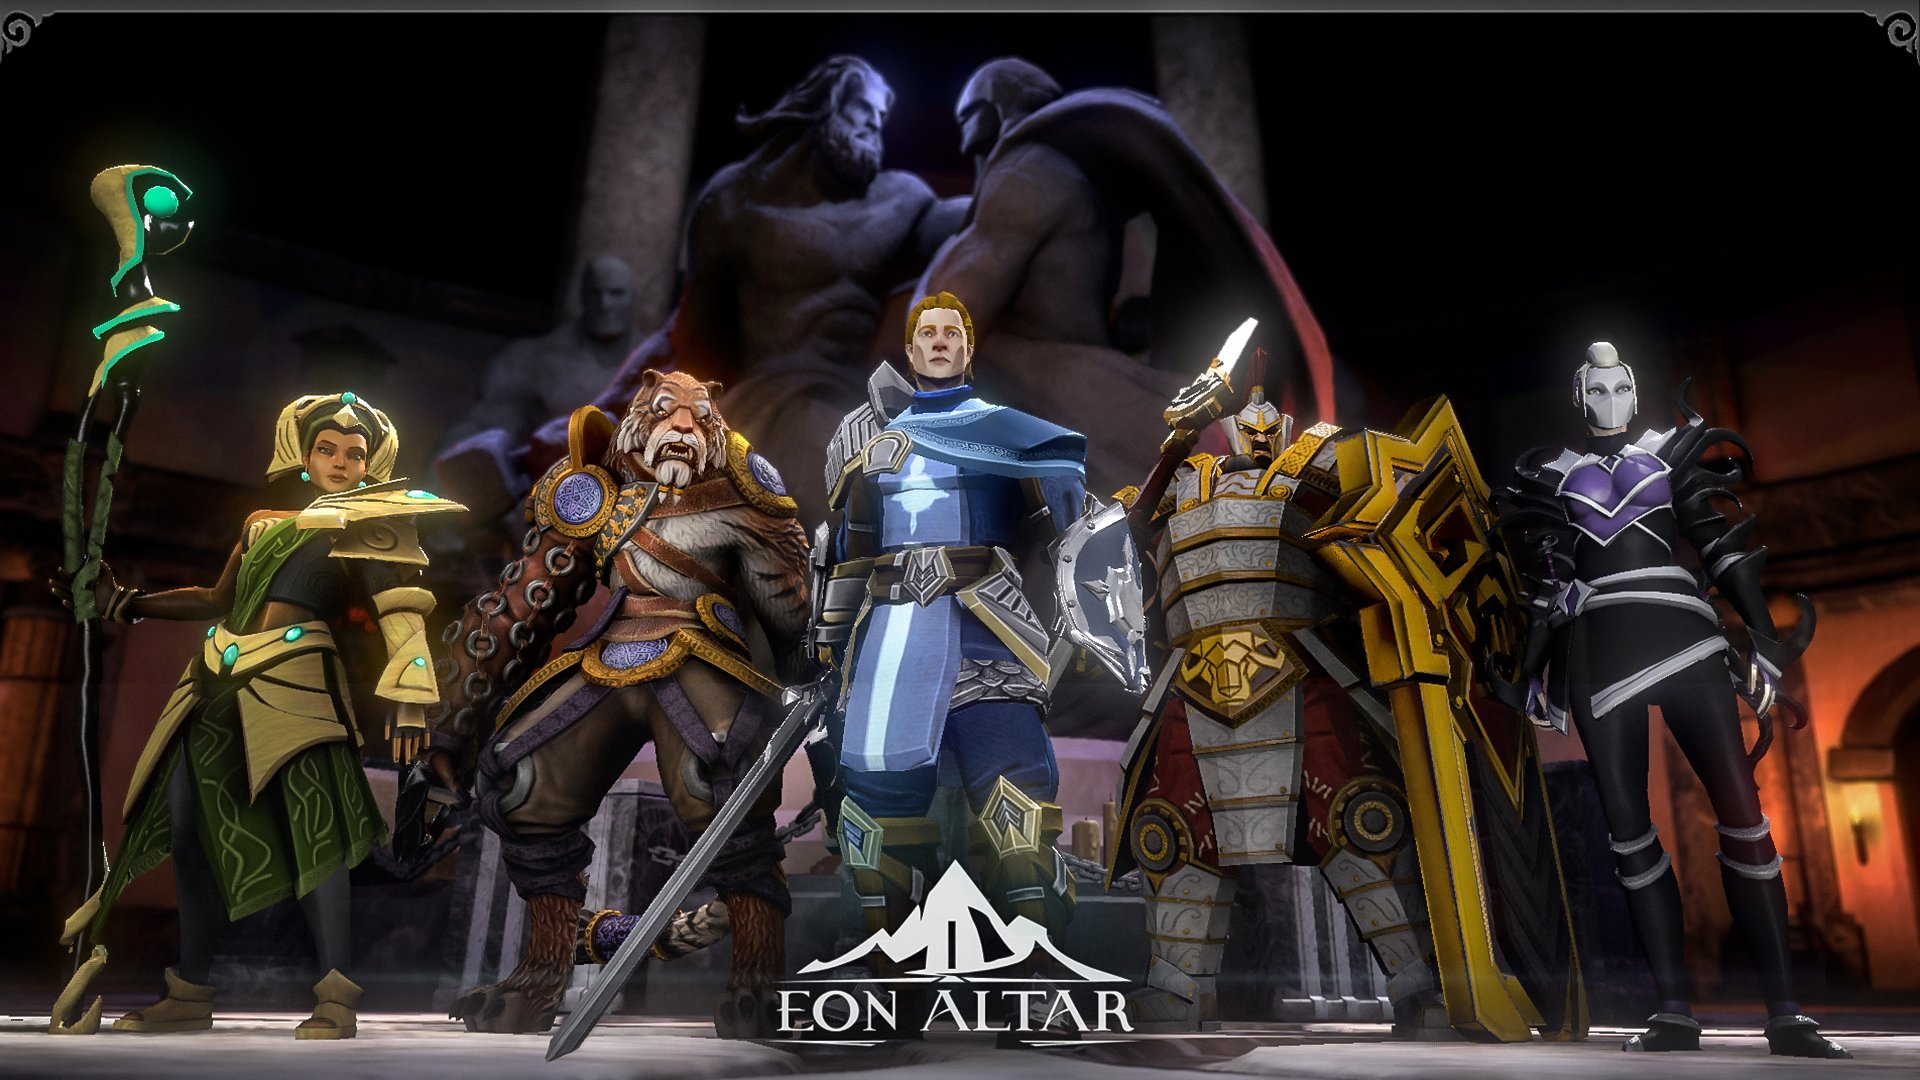 Eon Altar's characters are diverse and mechanically interesting, and the dialog between characters serves as a great jumping off point for real life discussion.